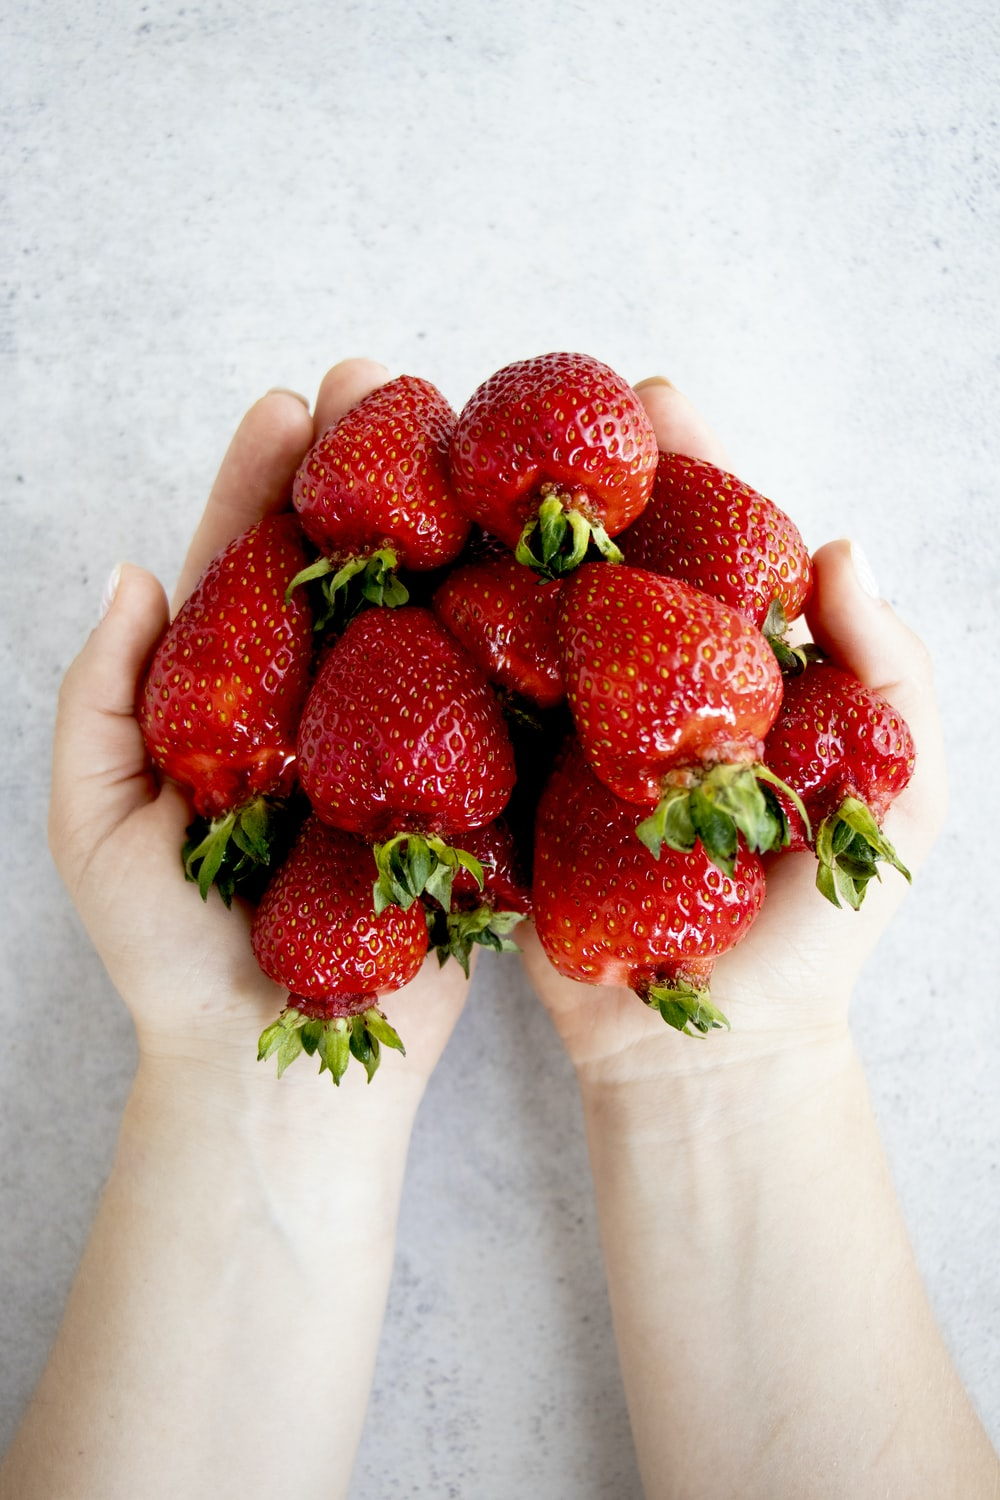 strawberries on persons hand